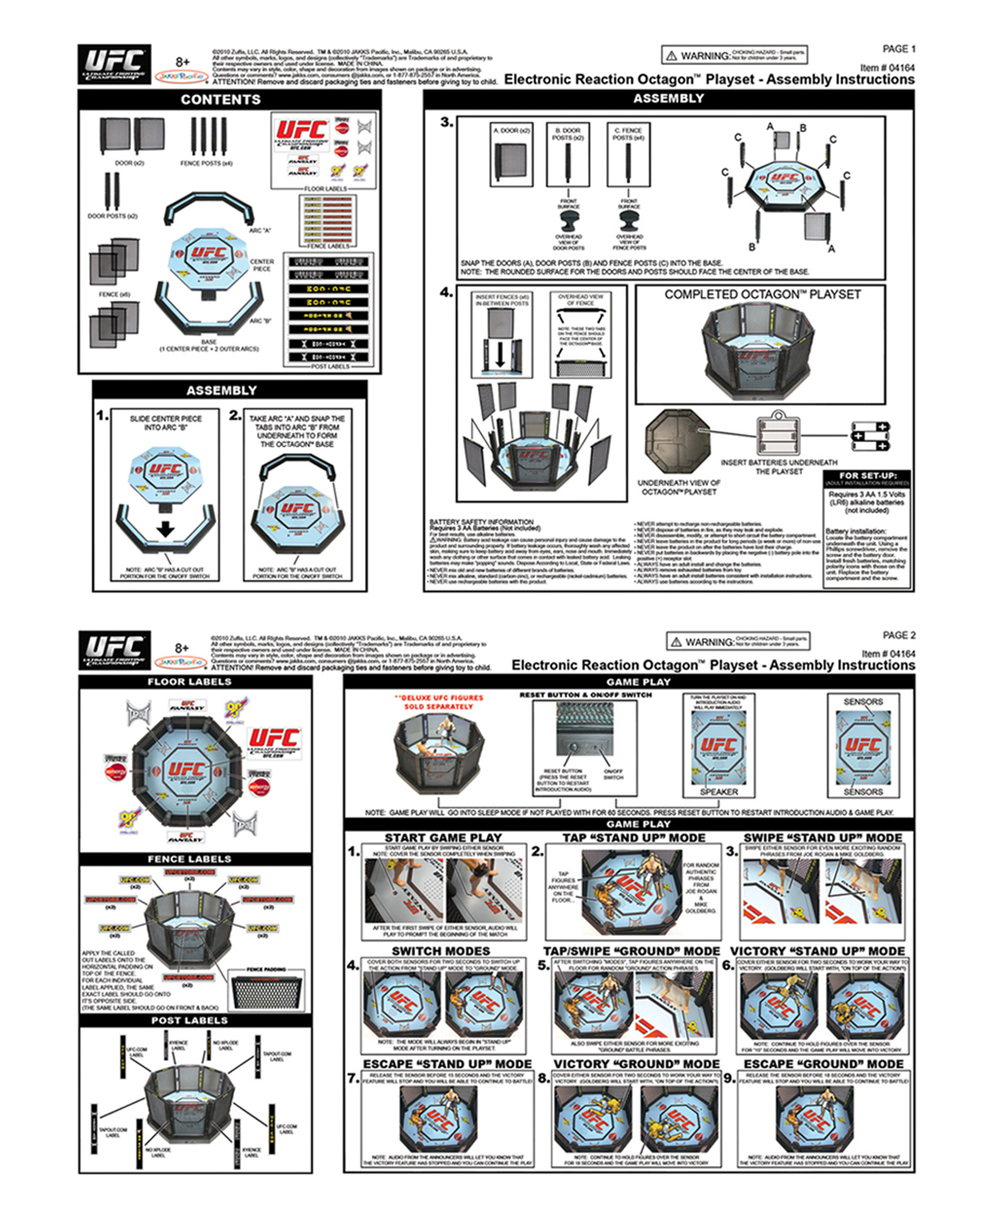 UFC Electronic Reaction Octagon Playset (Instruction Sheet)